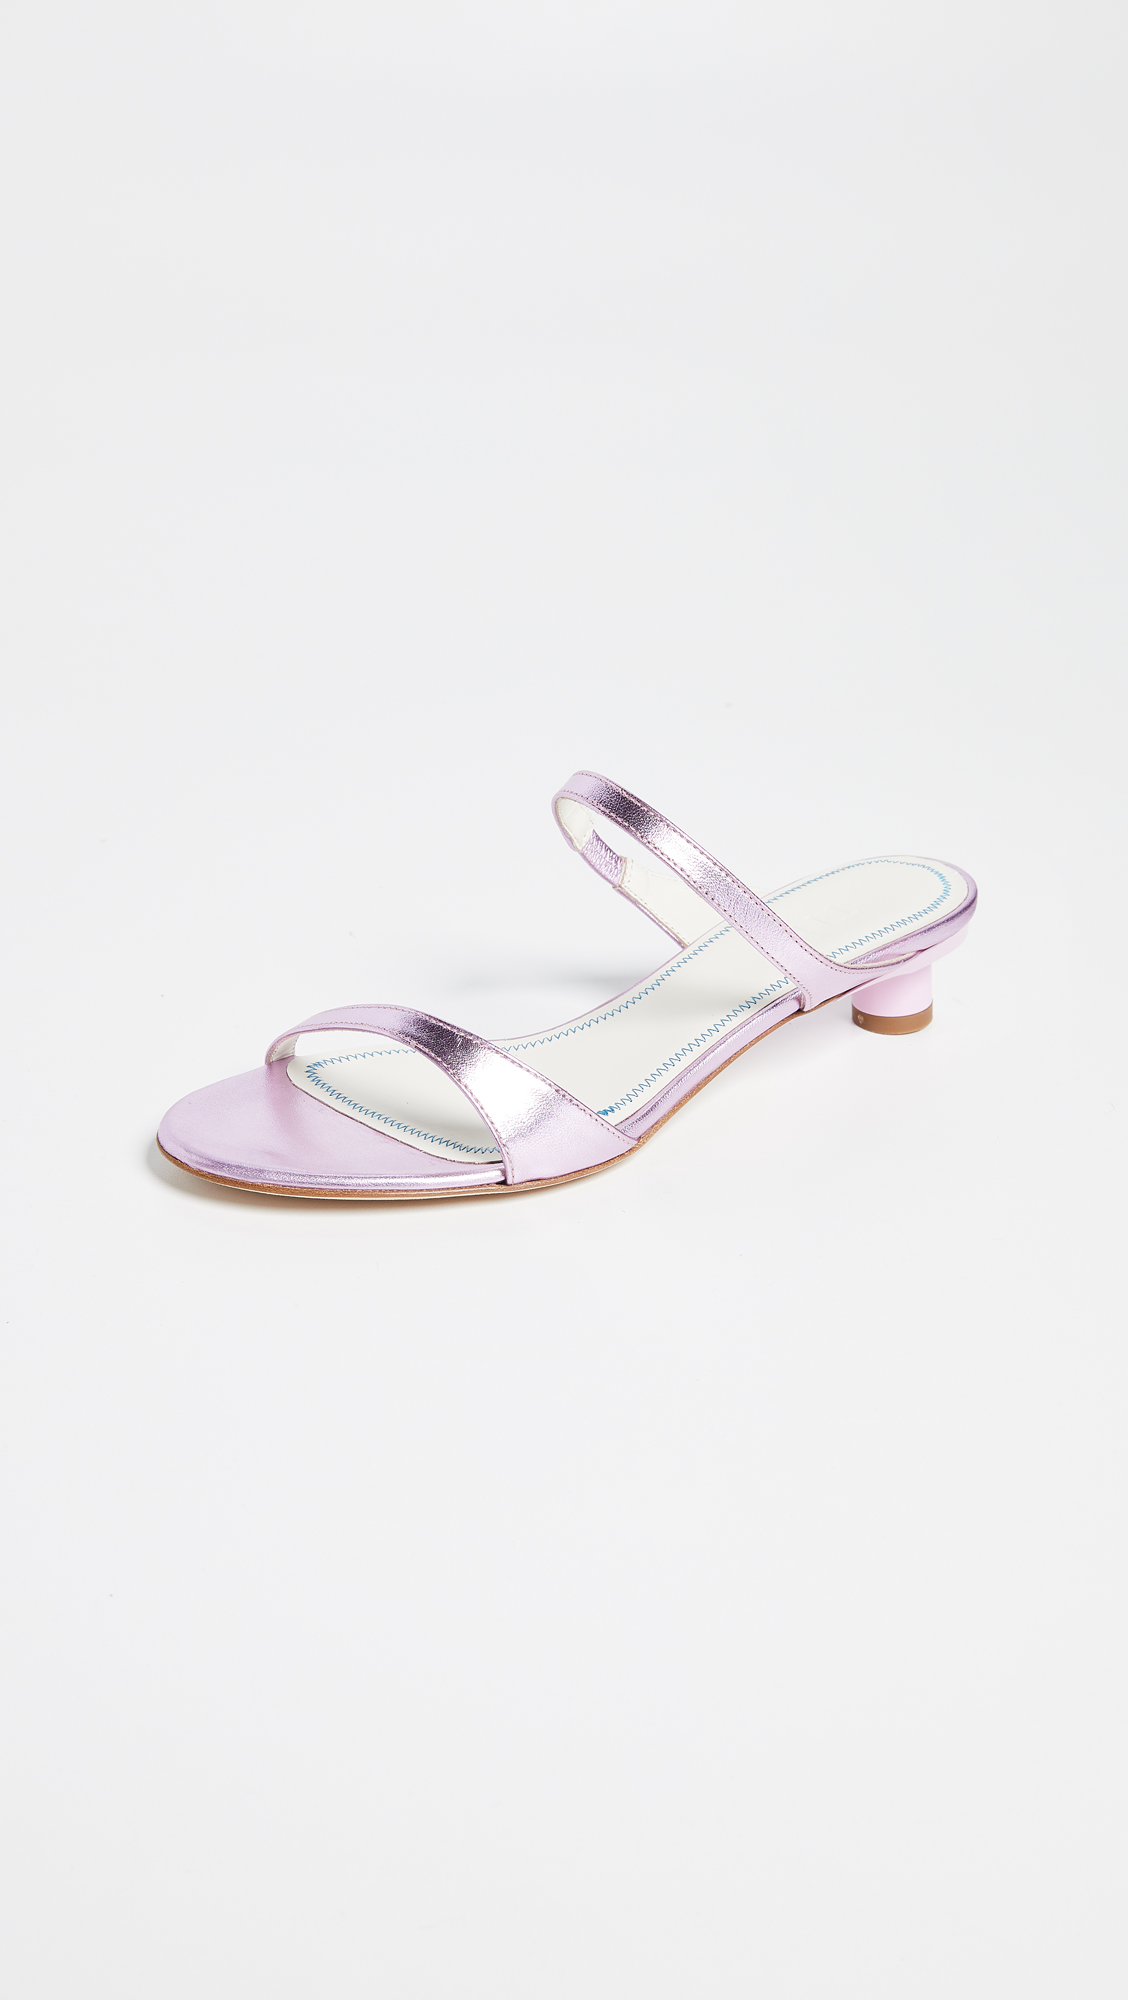 cbe379bbd54 Tibi Duke Slides | SHOPBOP